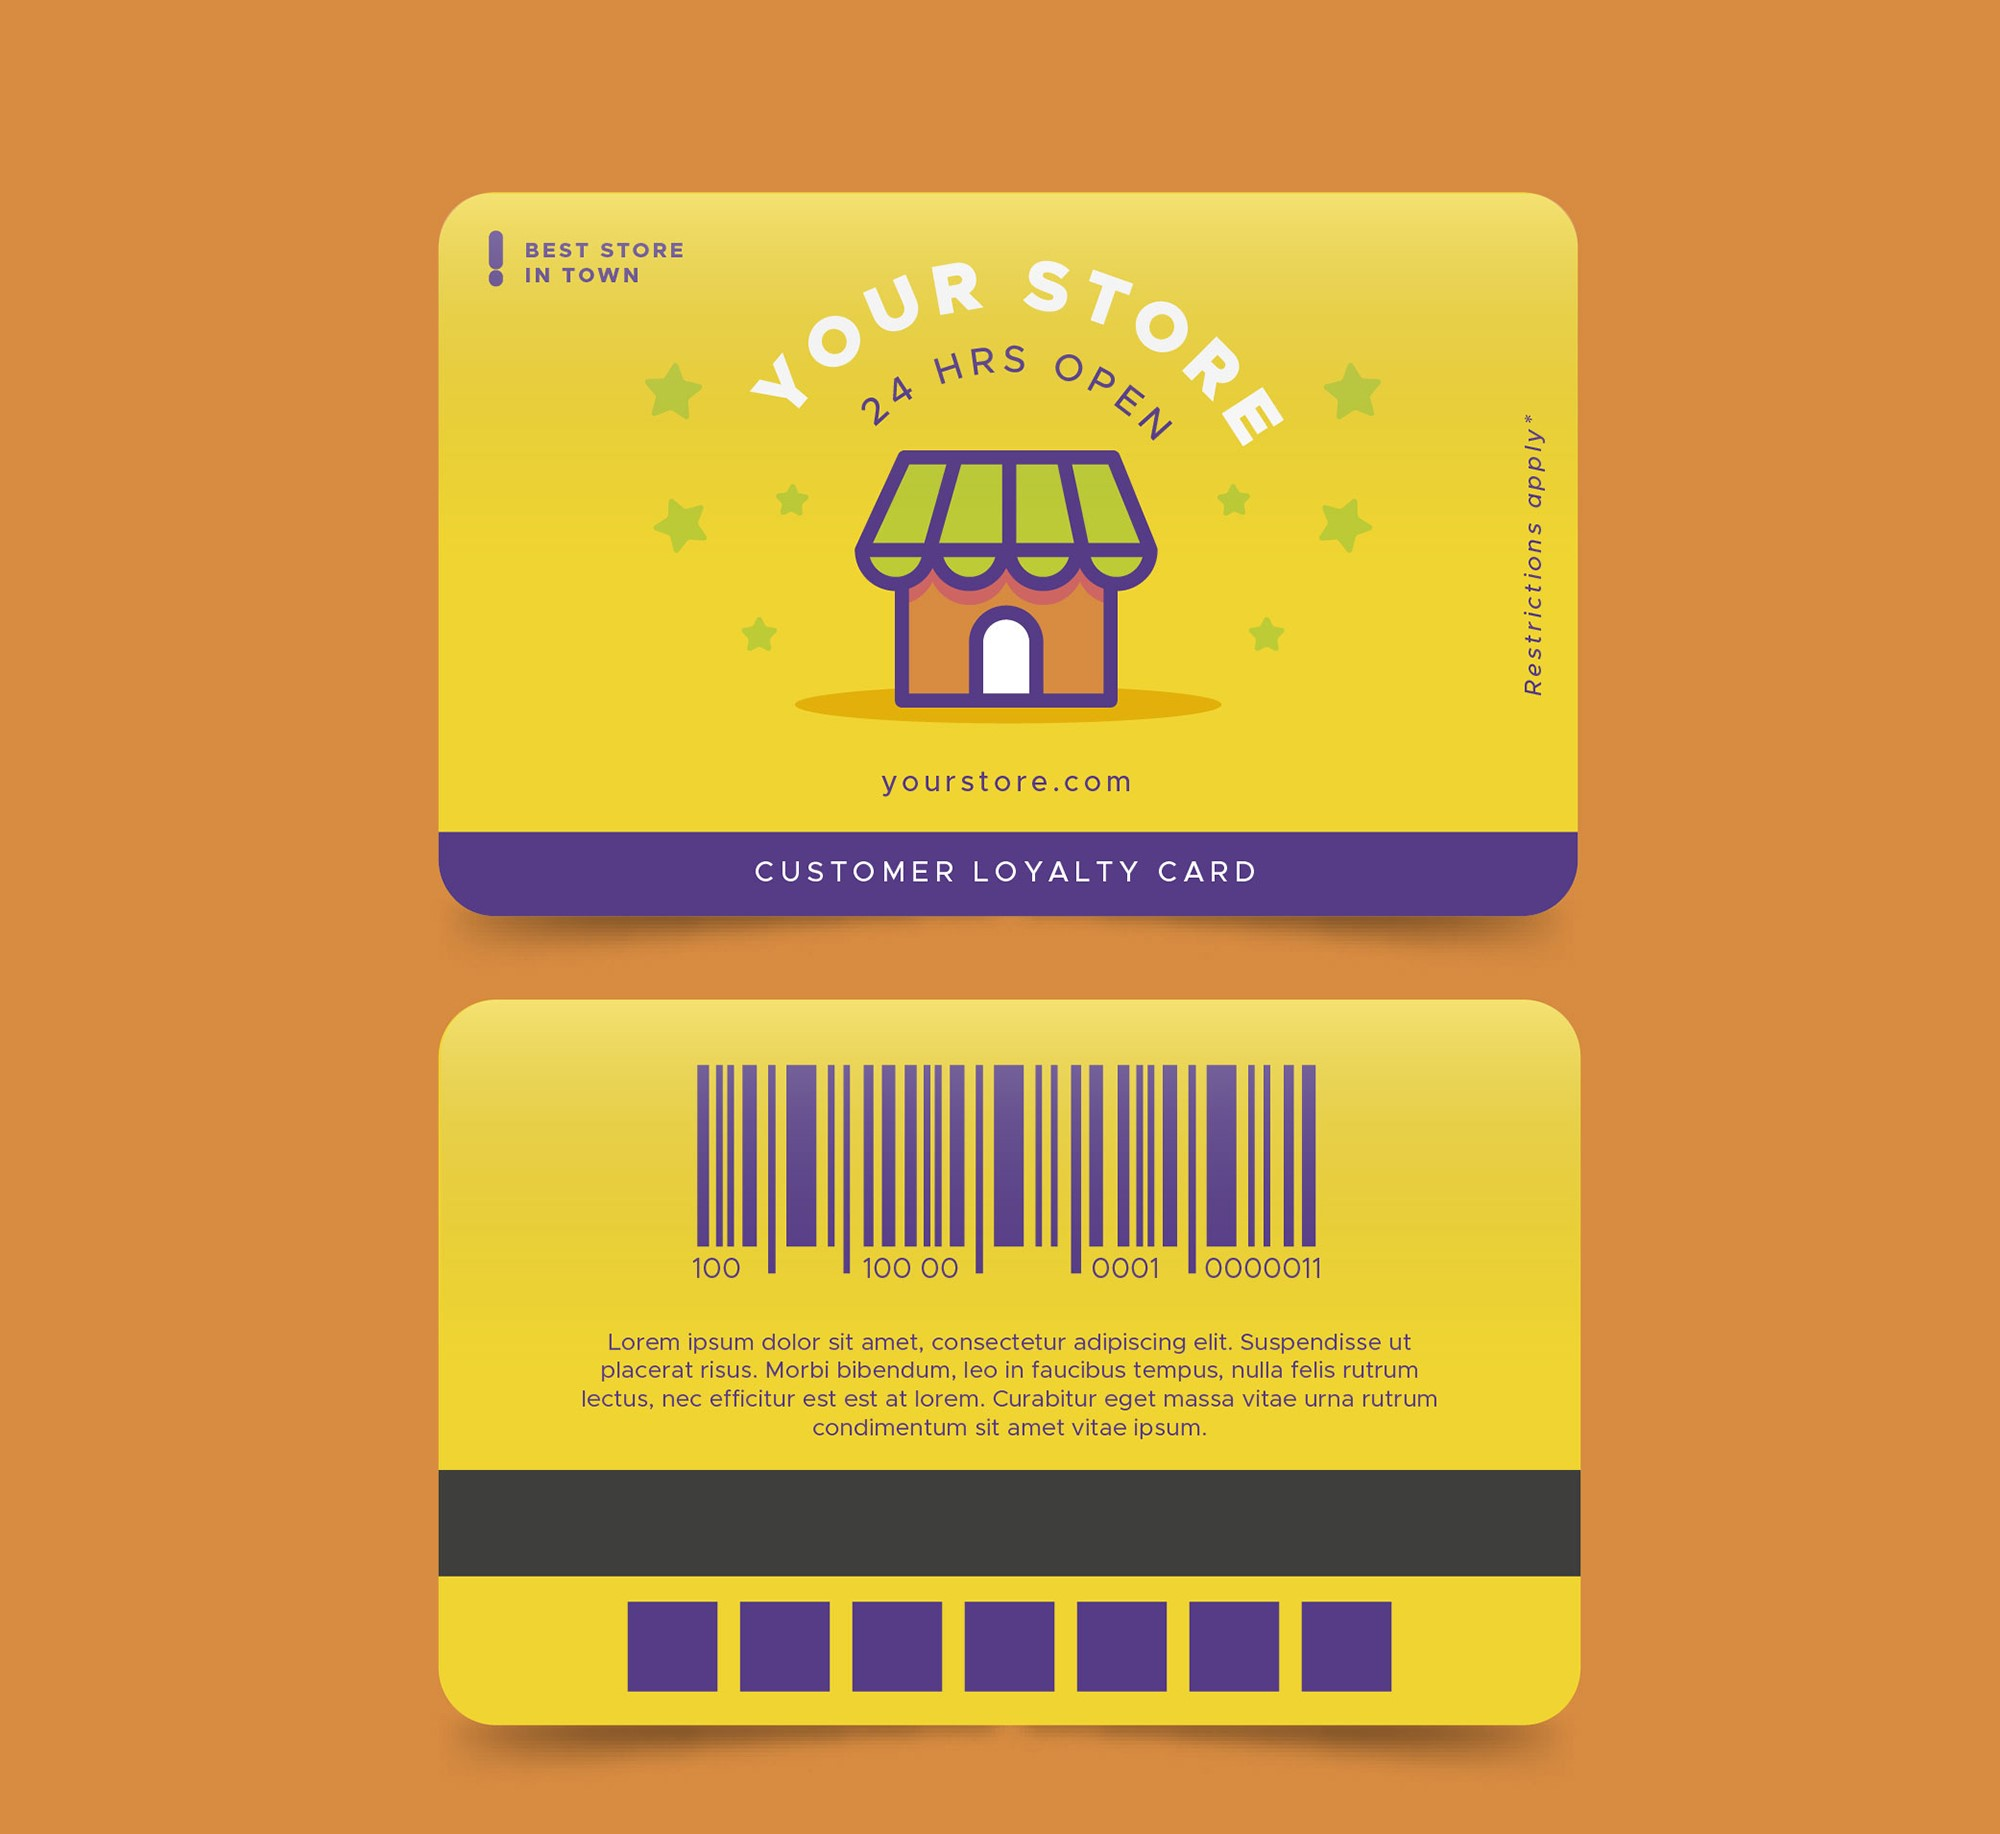 5 Effective Ways to Re-engage Customers with a Loyalty Program